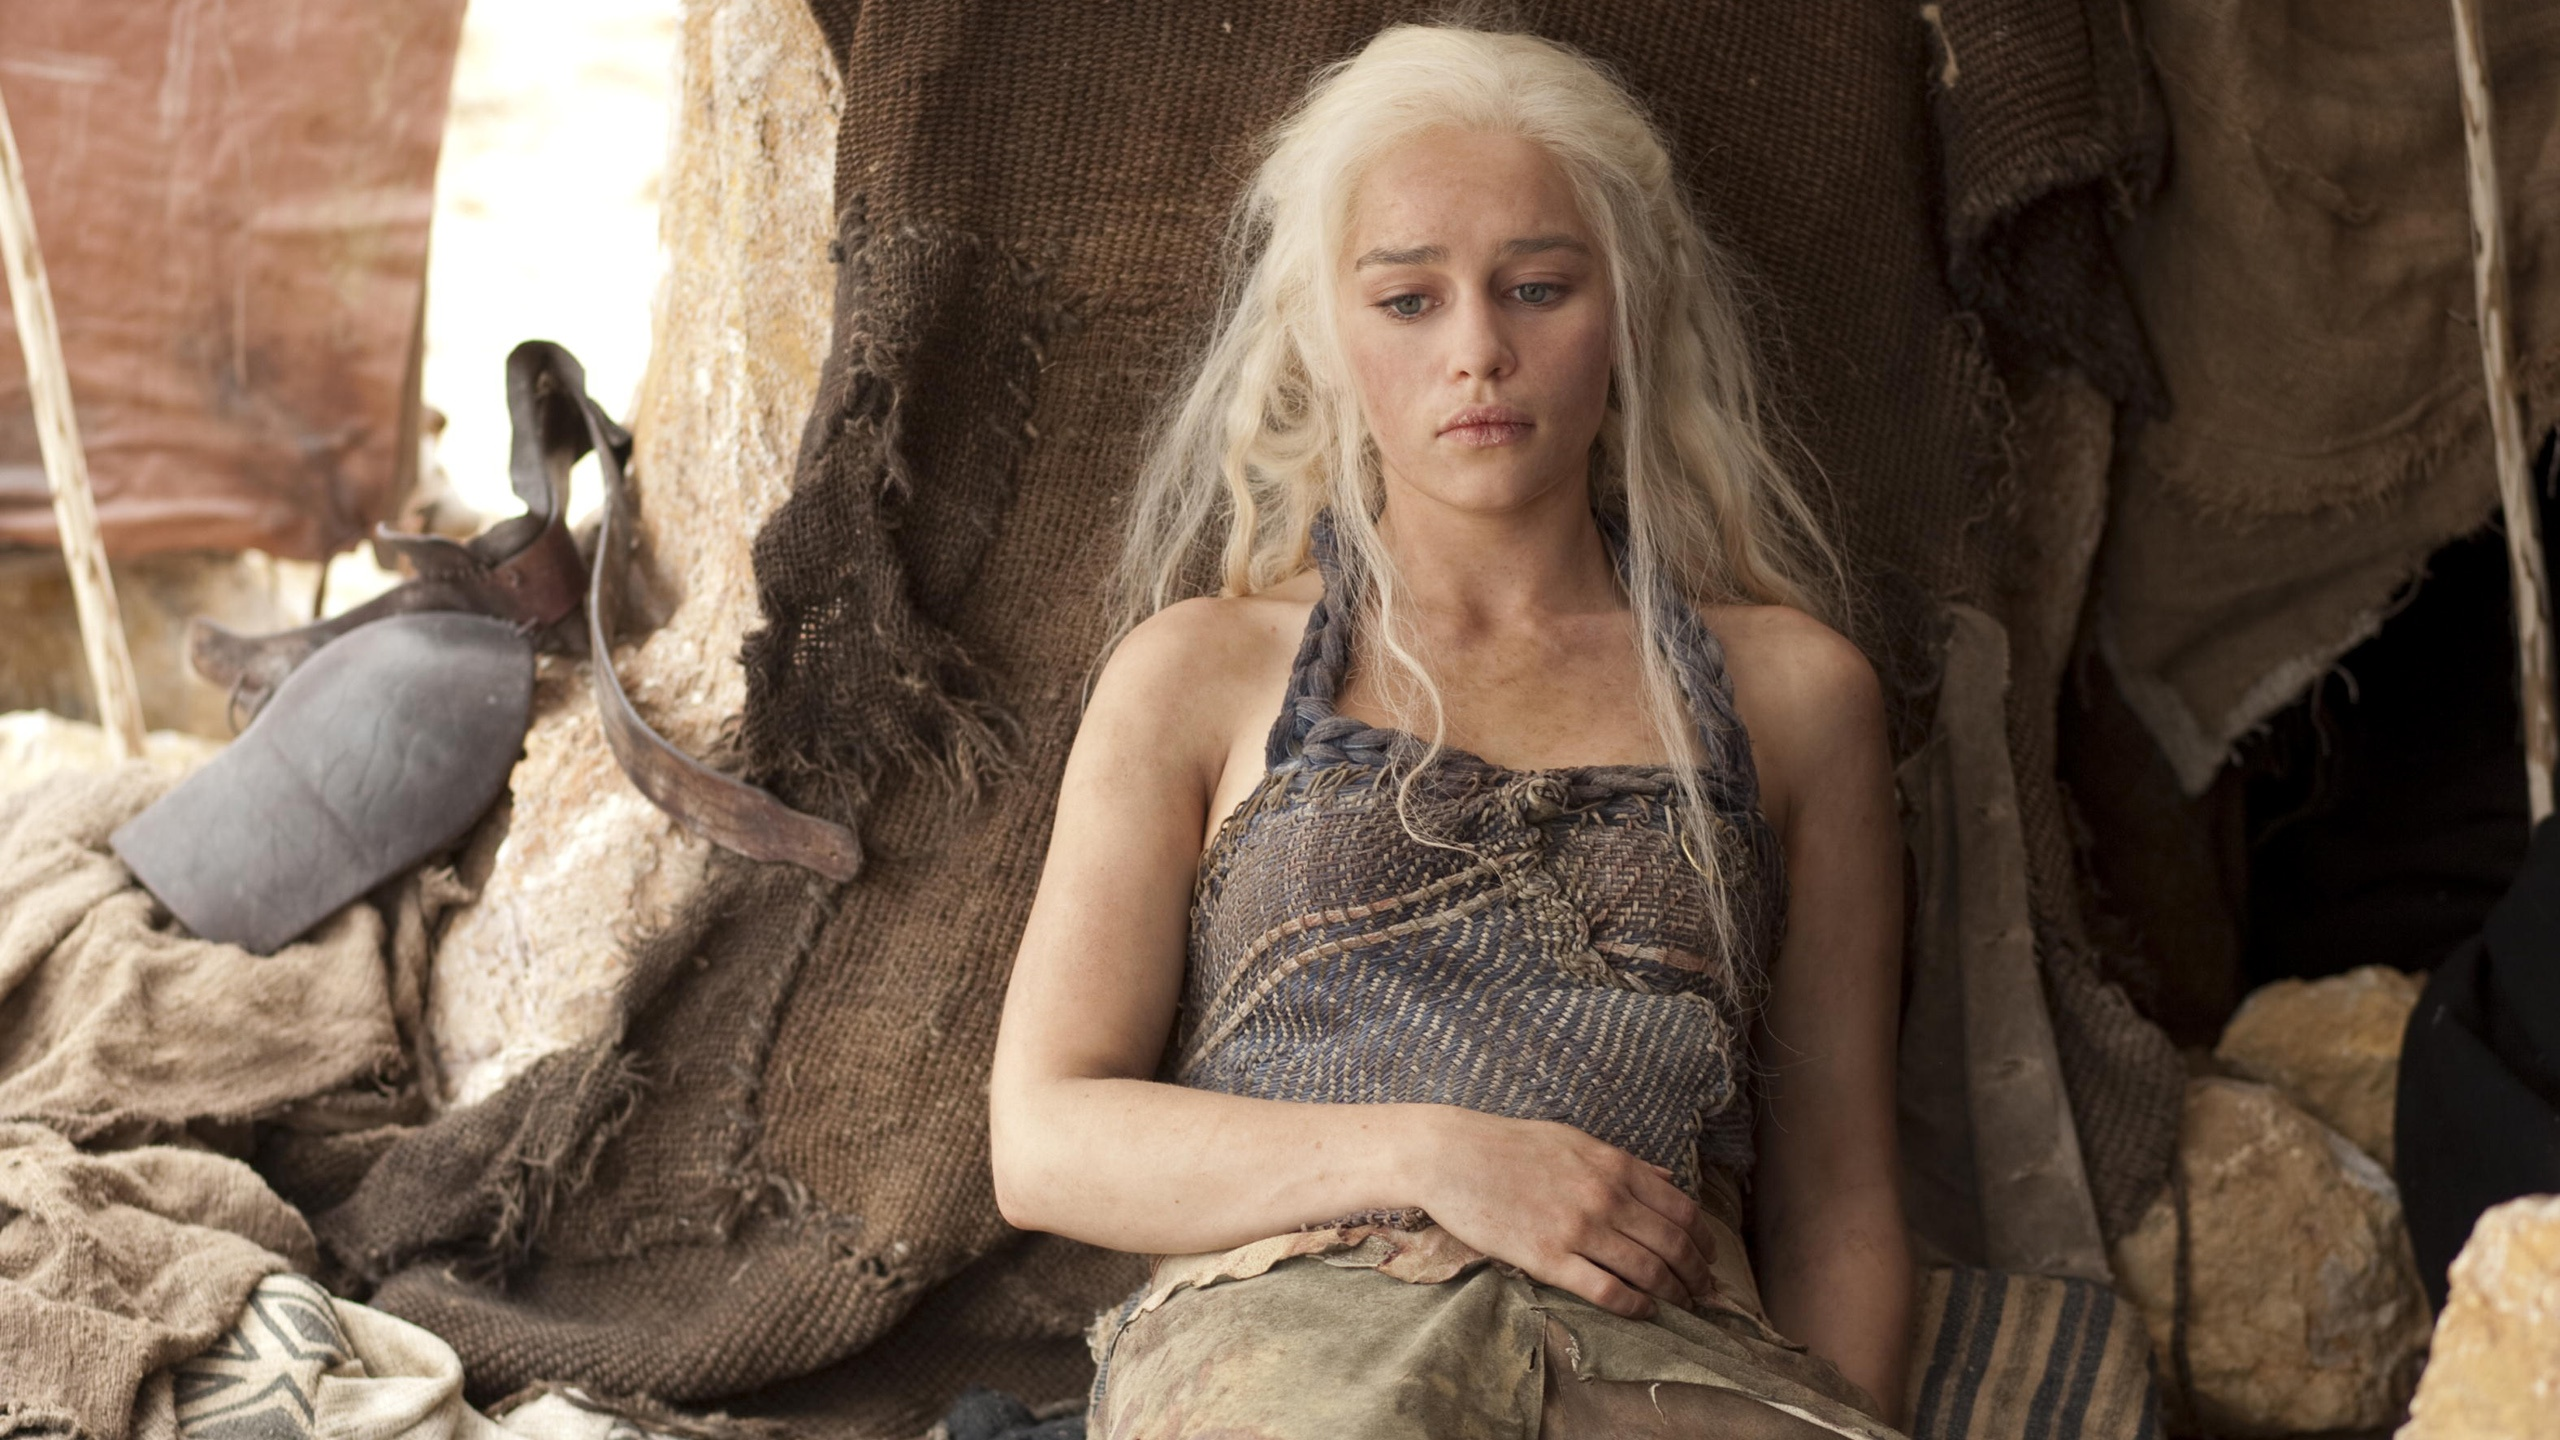 http://fr.best-wallpaper.net/wallpaper/2560x1440/1301/Emilia-Clarke-in-Game-of-Thrones_2560x1440.jpg